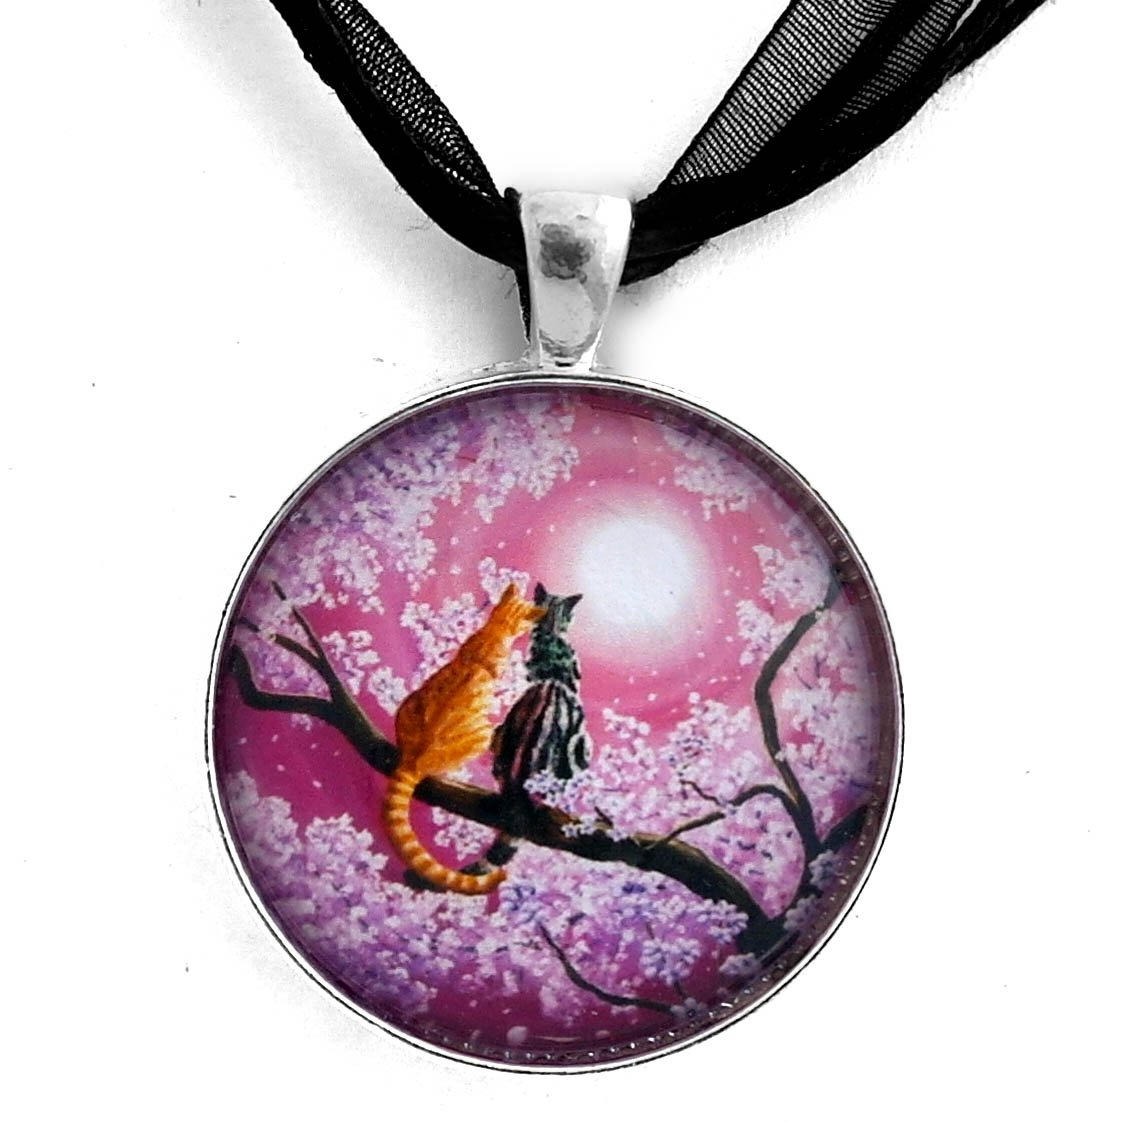 Laura Milnor Iverson Orange and Gray Tabby Cats in Cherry Blossoms Romantic Pink Zen Moon Handmade Jewelry Pendant Black Ribbon Necklace